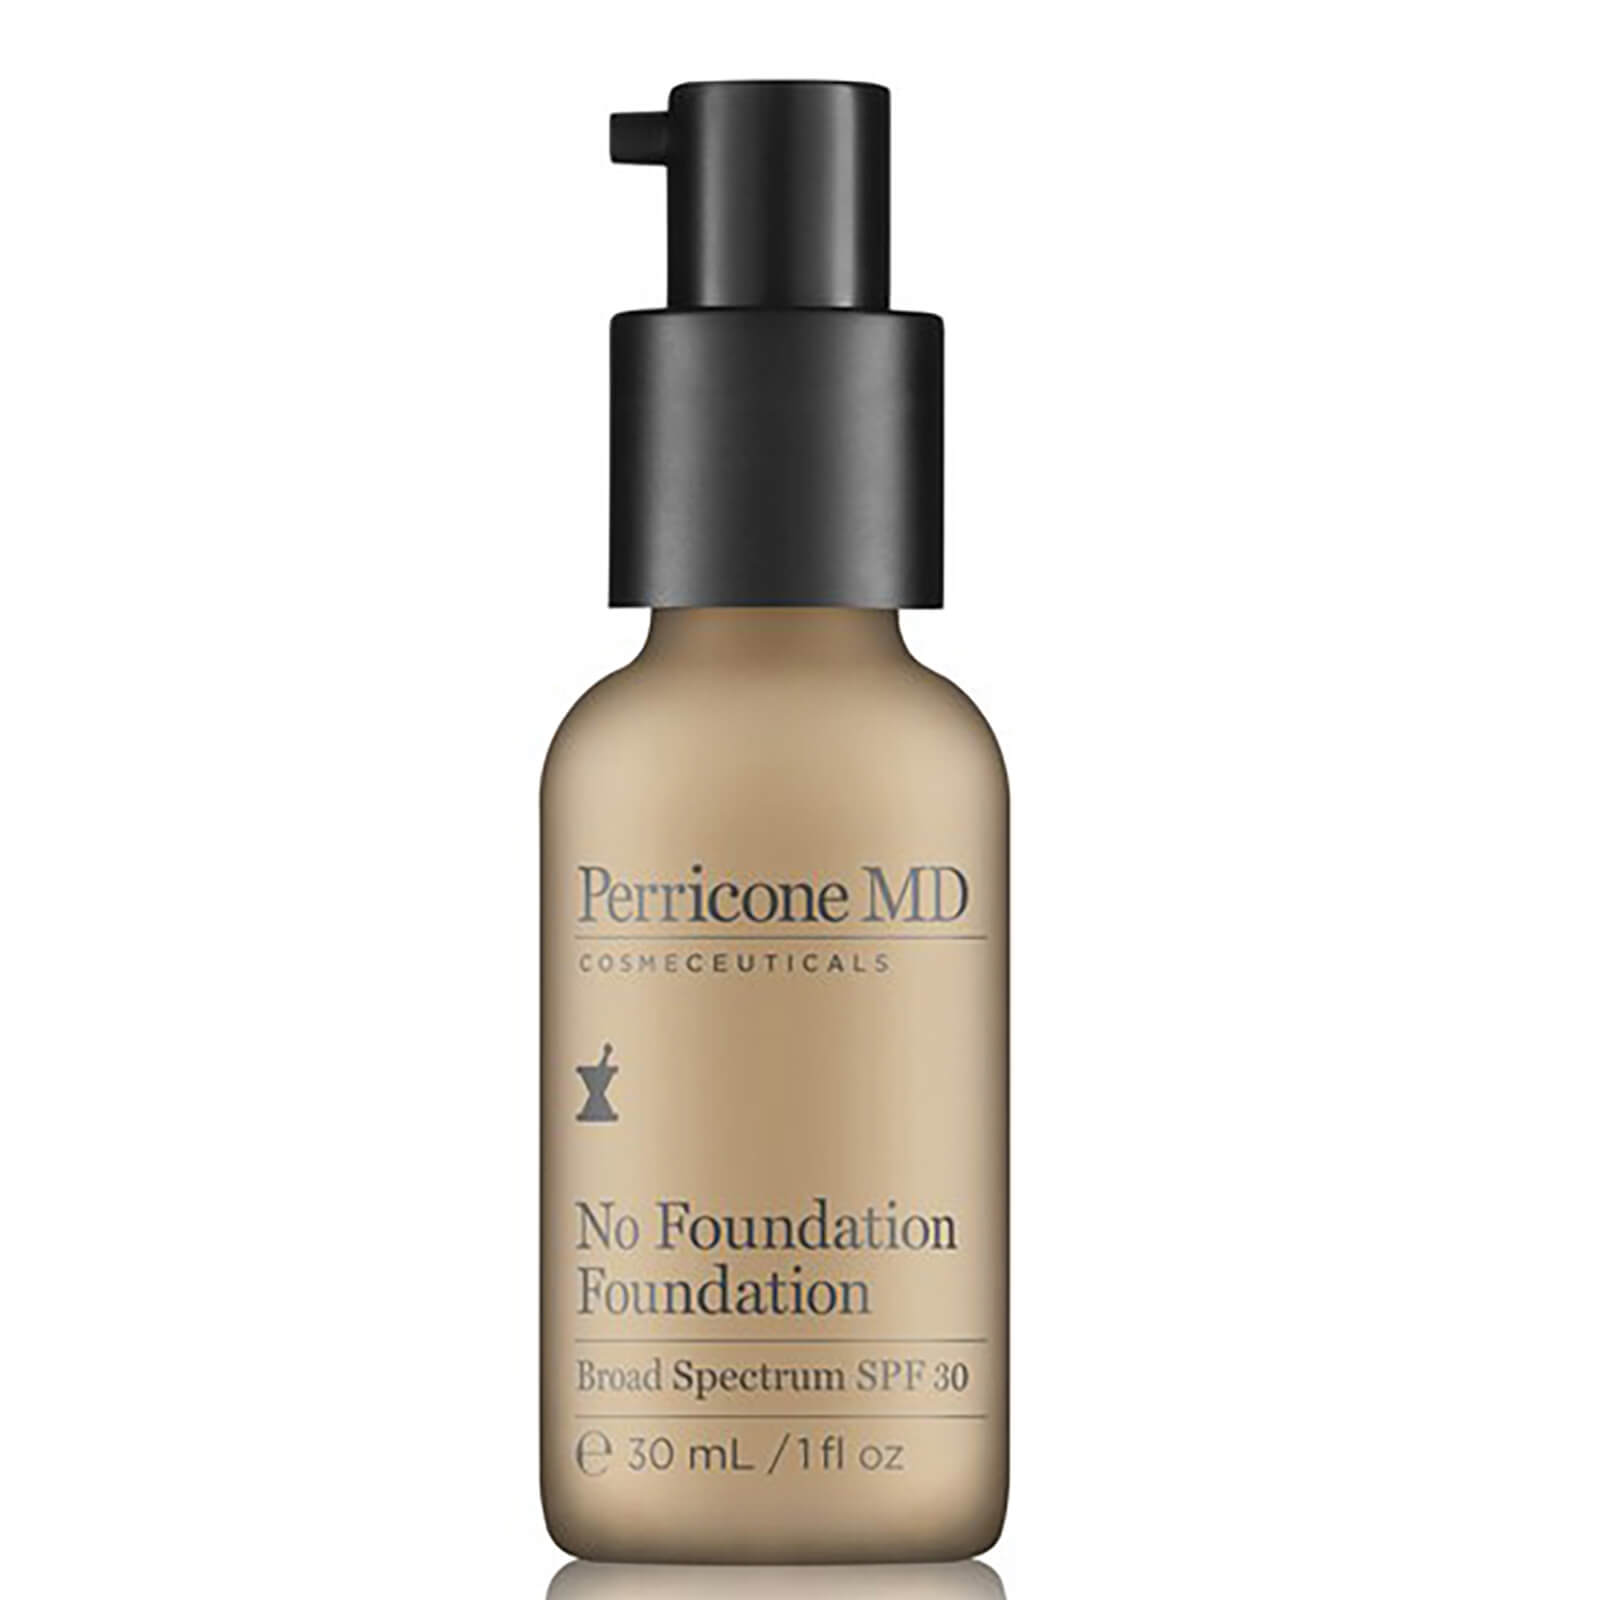 Perricone MD No Foundation Foundation - No 2 (30ml) (Light/Medium)